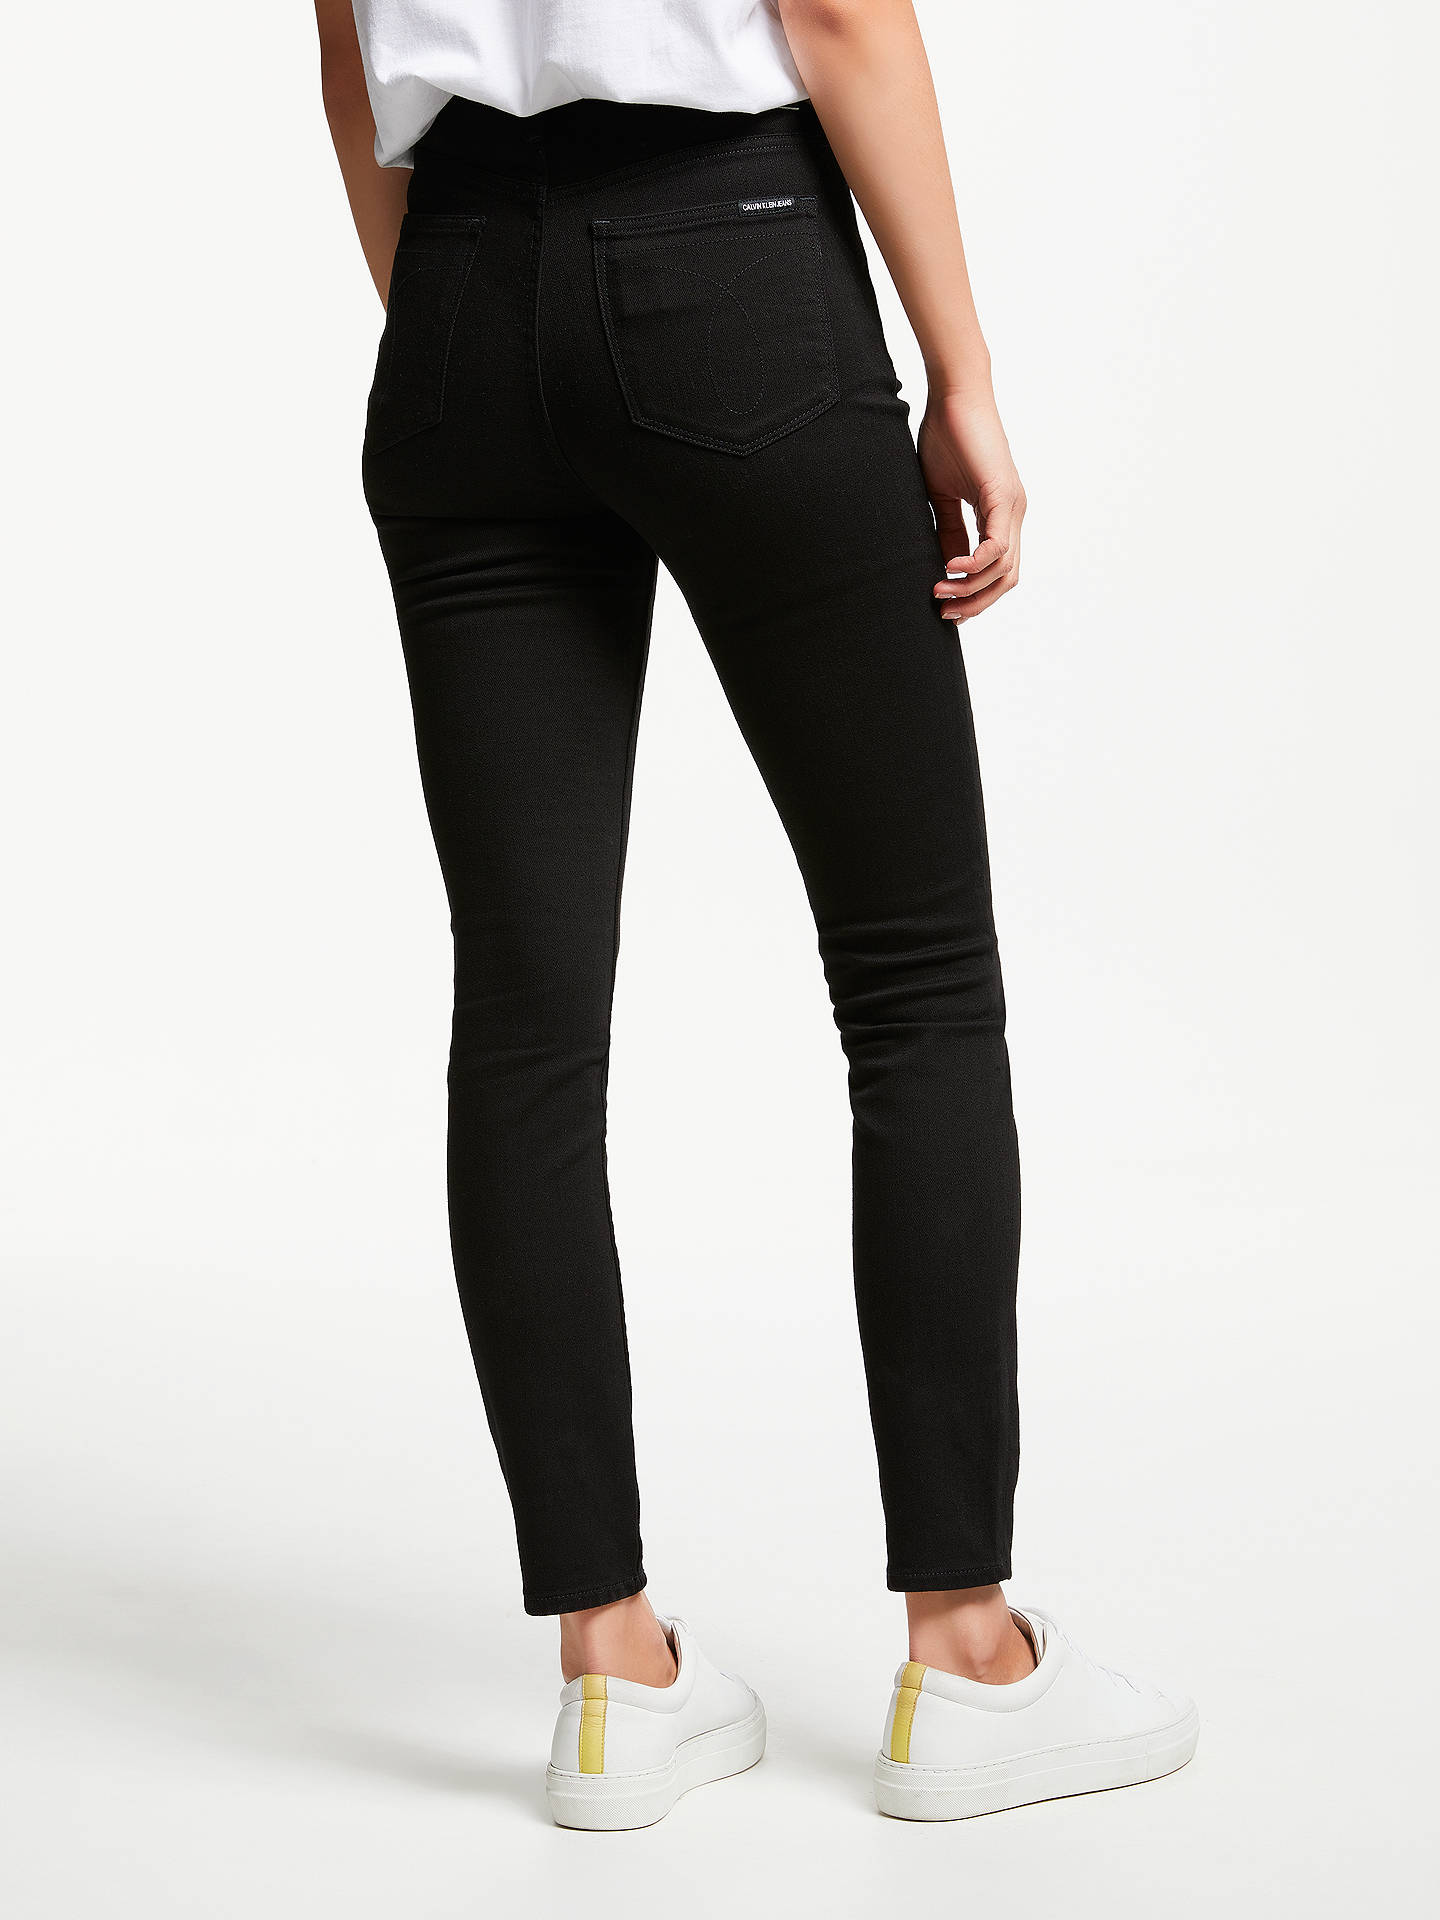 BuyCalvin Klein High Rise Skinny Jeans, Eternal Black, 27 Online at johnlewis.com